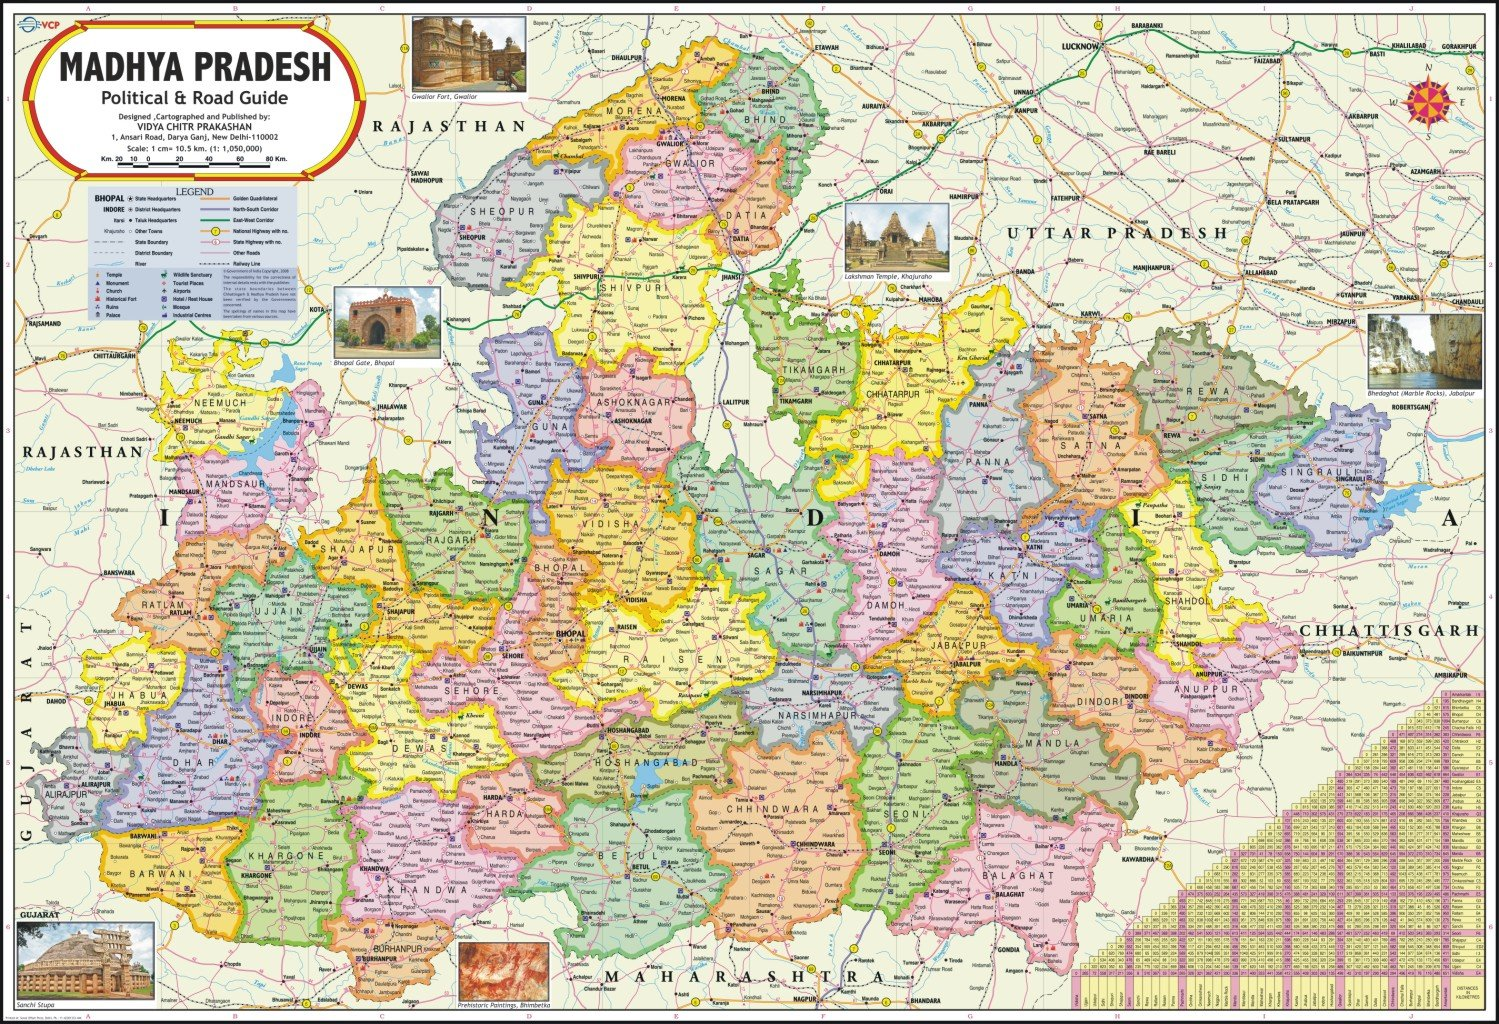 Buy Madhya Pradesh Map Book Online at